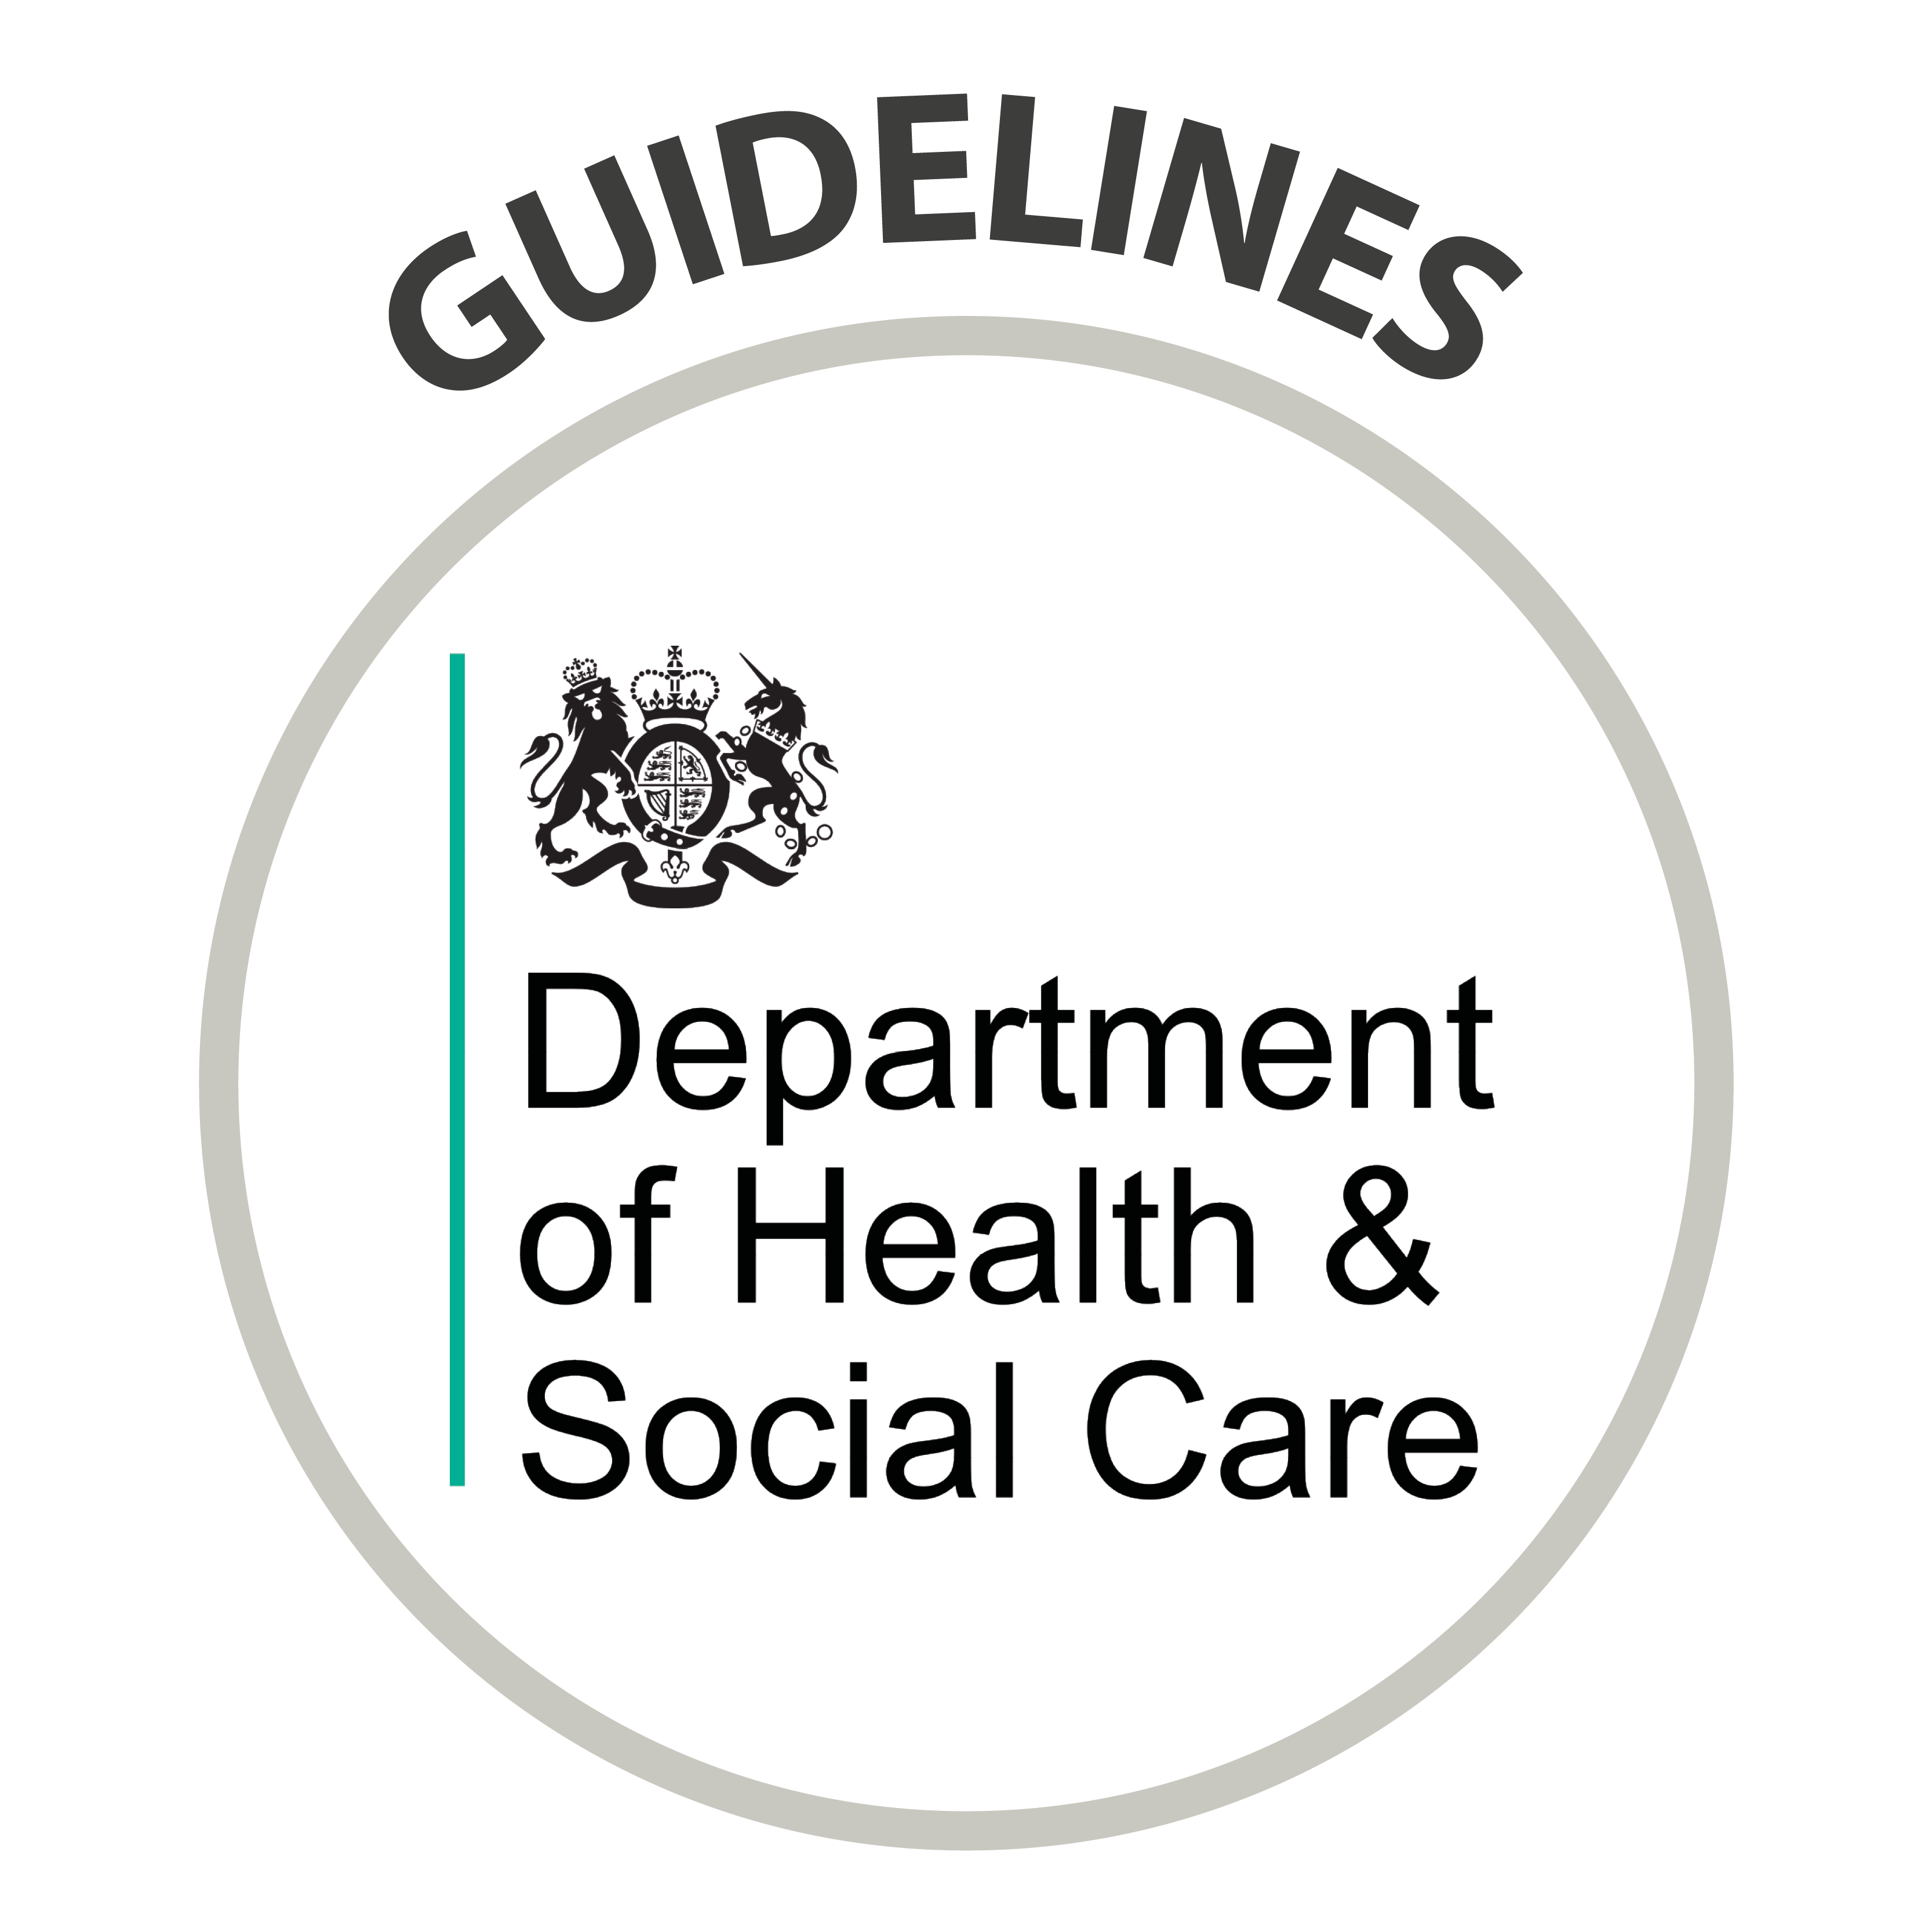 Guidelines - Department of Health & Social Care Logo